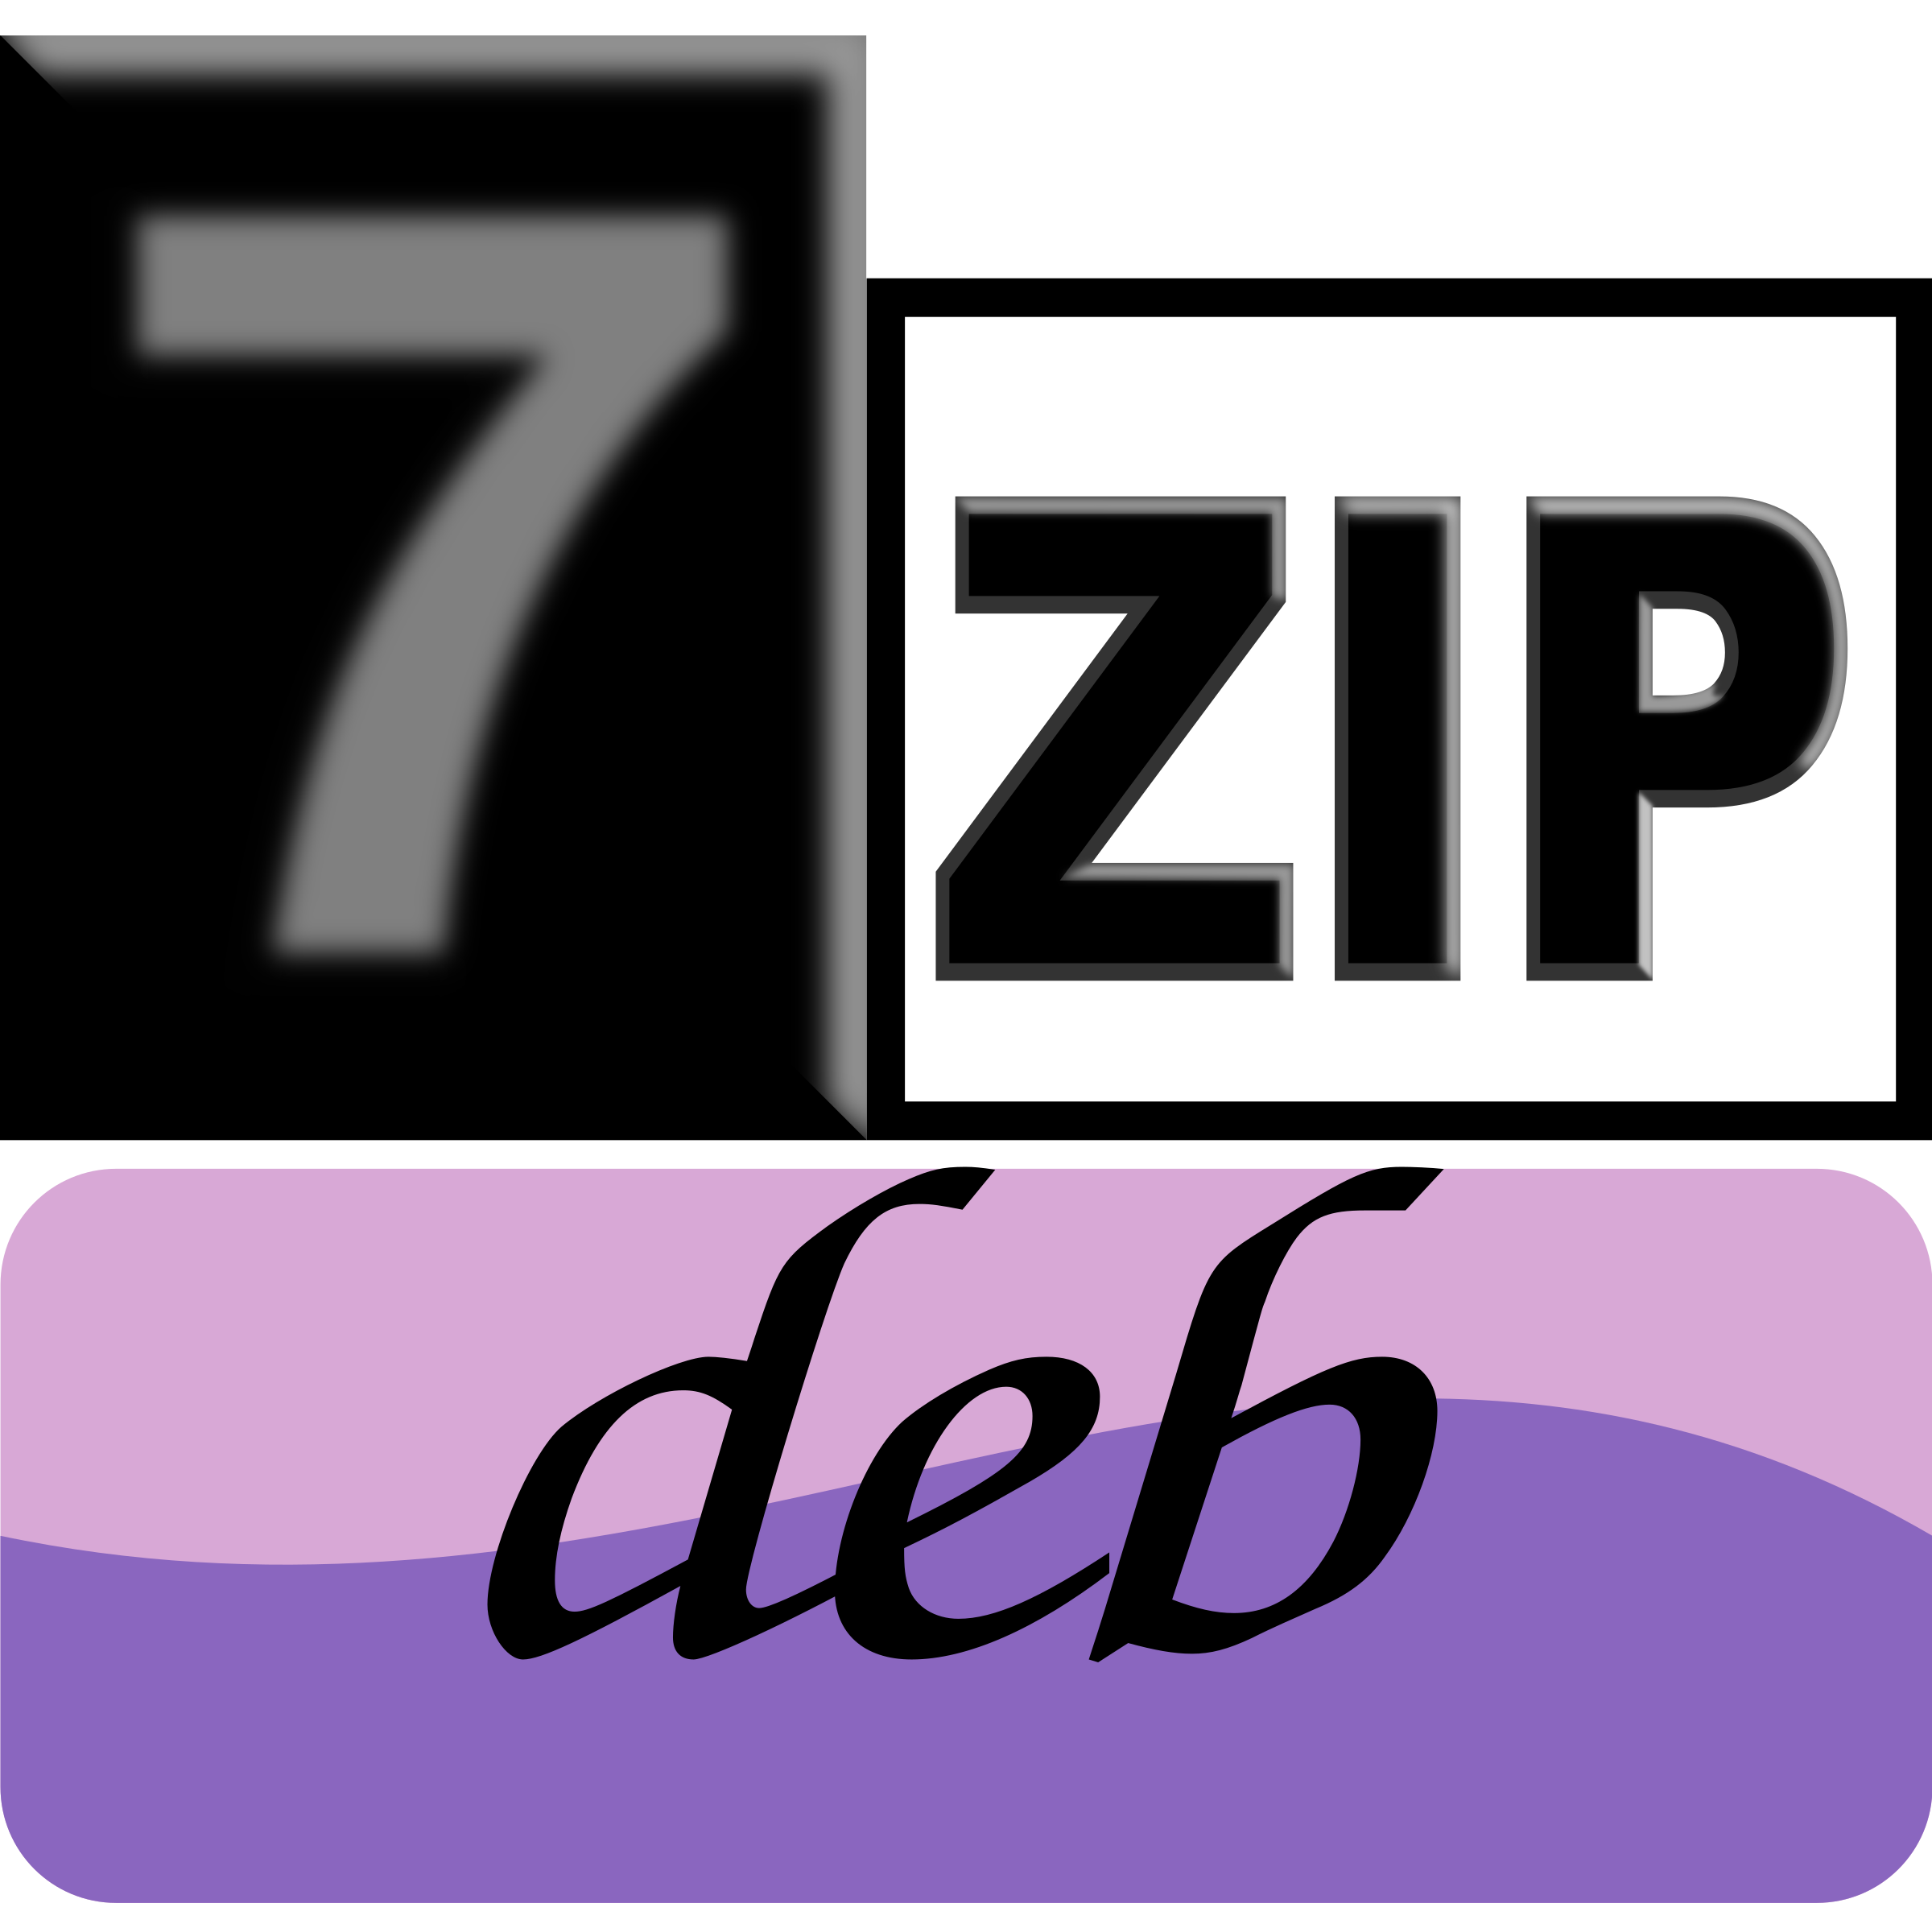 7zipClassic-deb by kg